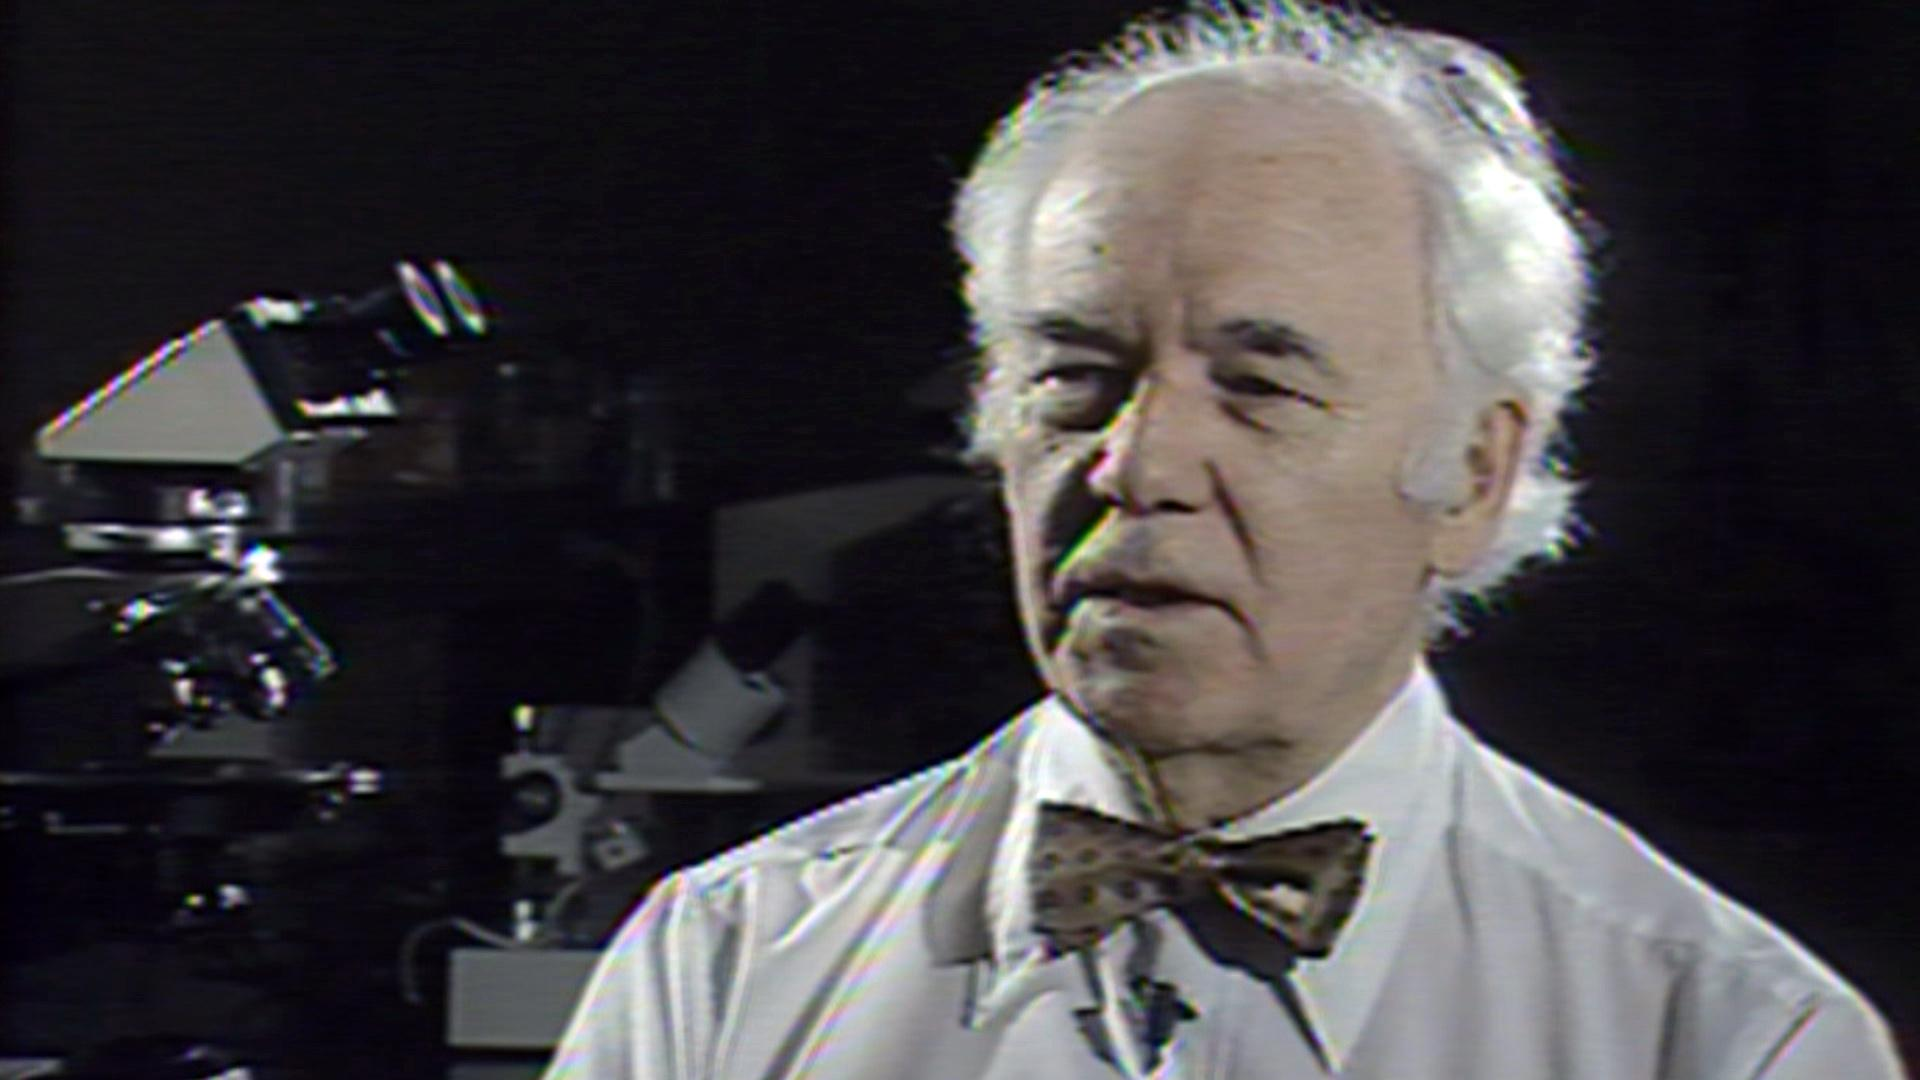 """Walter McCrone appears on WTTW's """"The New Explorers"""" in 1990. (WTTW News)"""